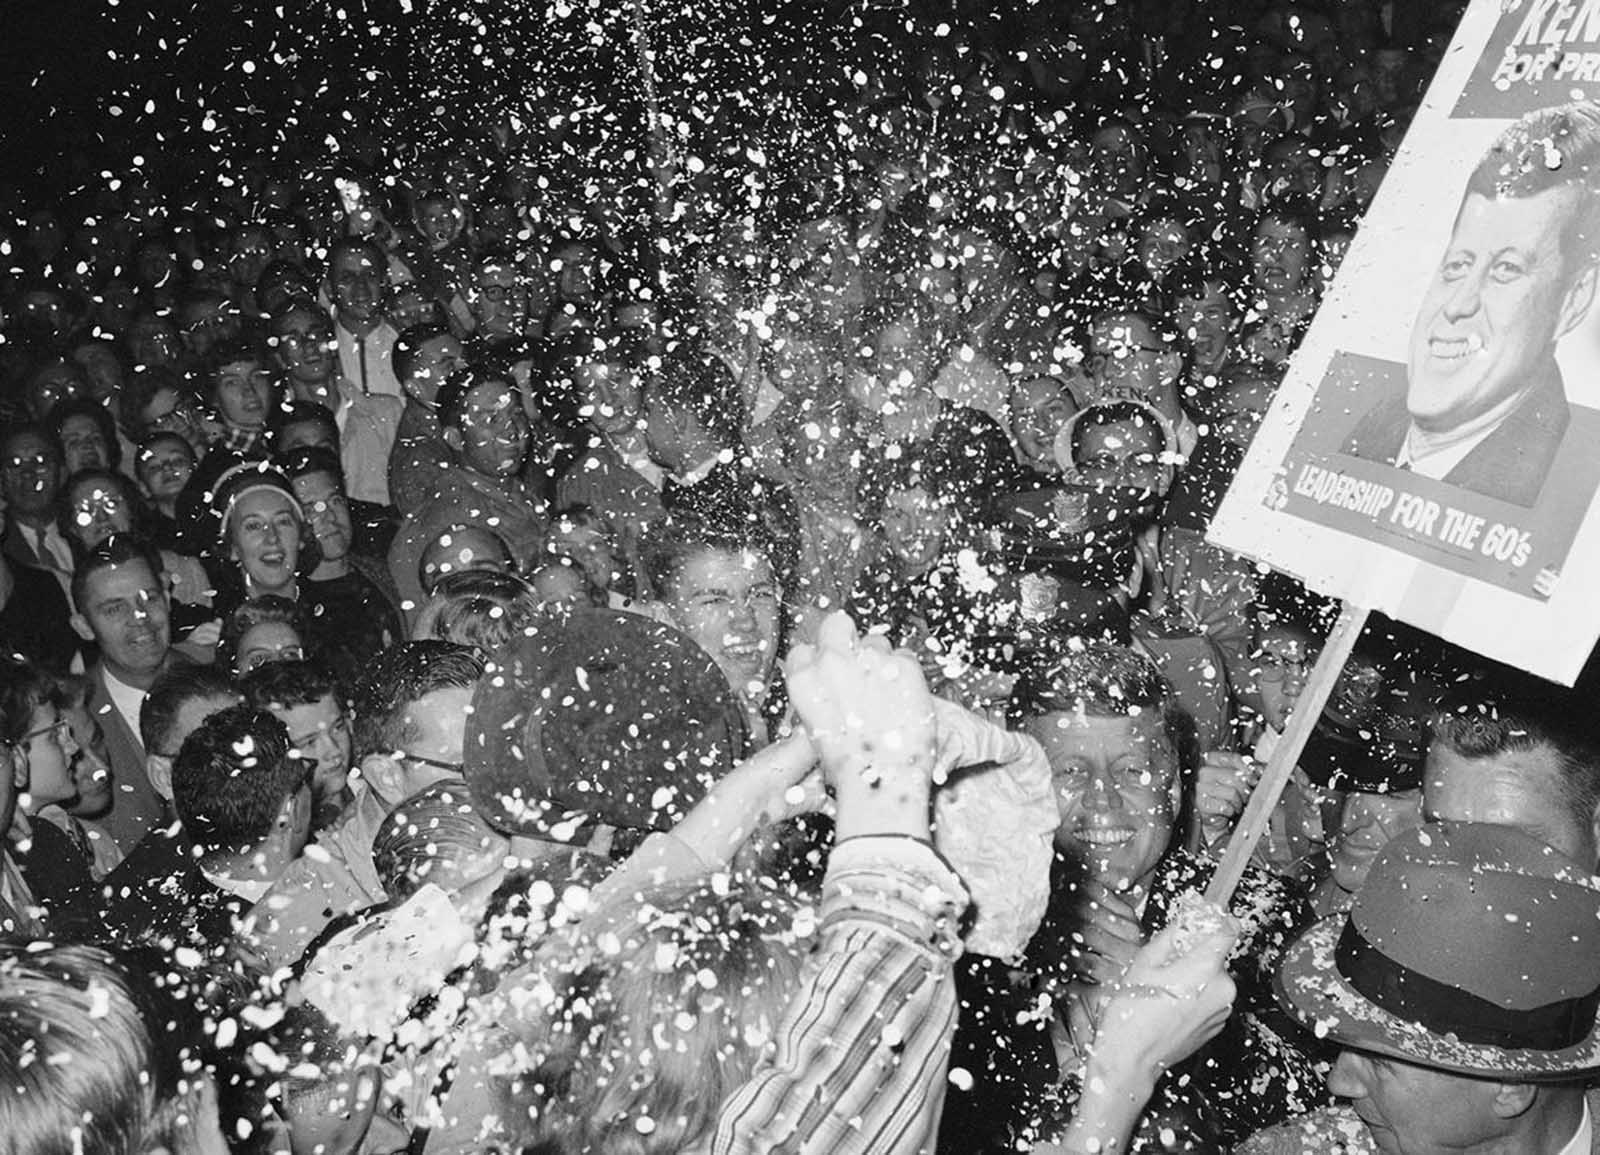 Senator John F. Kennedy, (lower right), grins happily as backers cheer the Democratic presidential candidate in Minneapolis, on October 1st. Kennedy was leaving his hotel for a rally and was surrounded by a large crowd of partisans on October 2, 1960. They waved banner threw confetti and yelled heartily. Between 18,000 and 20,000 attended the rally and thousands more were turned away.